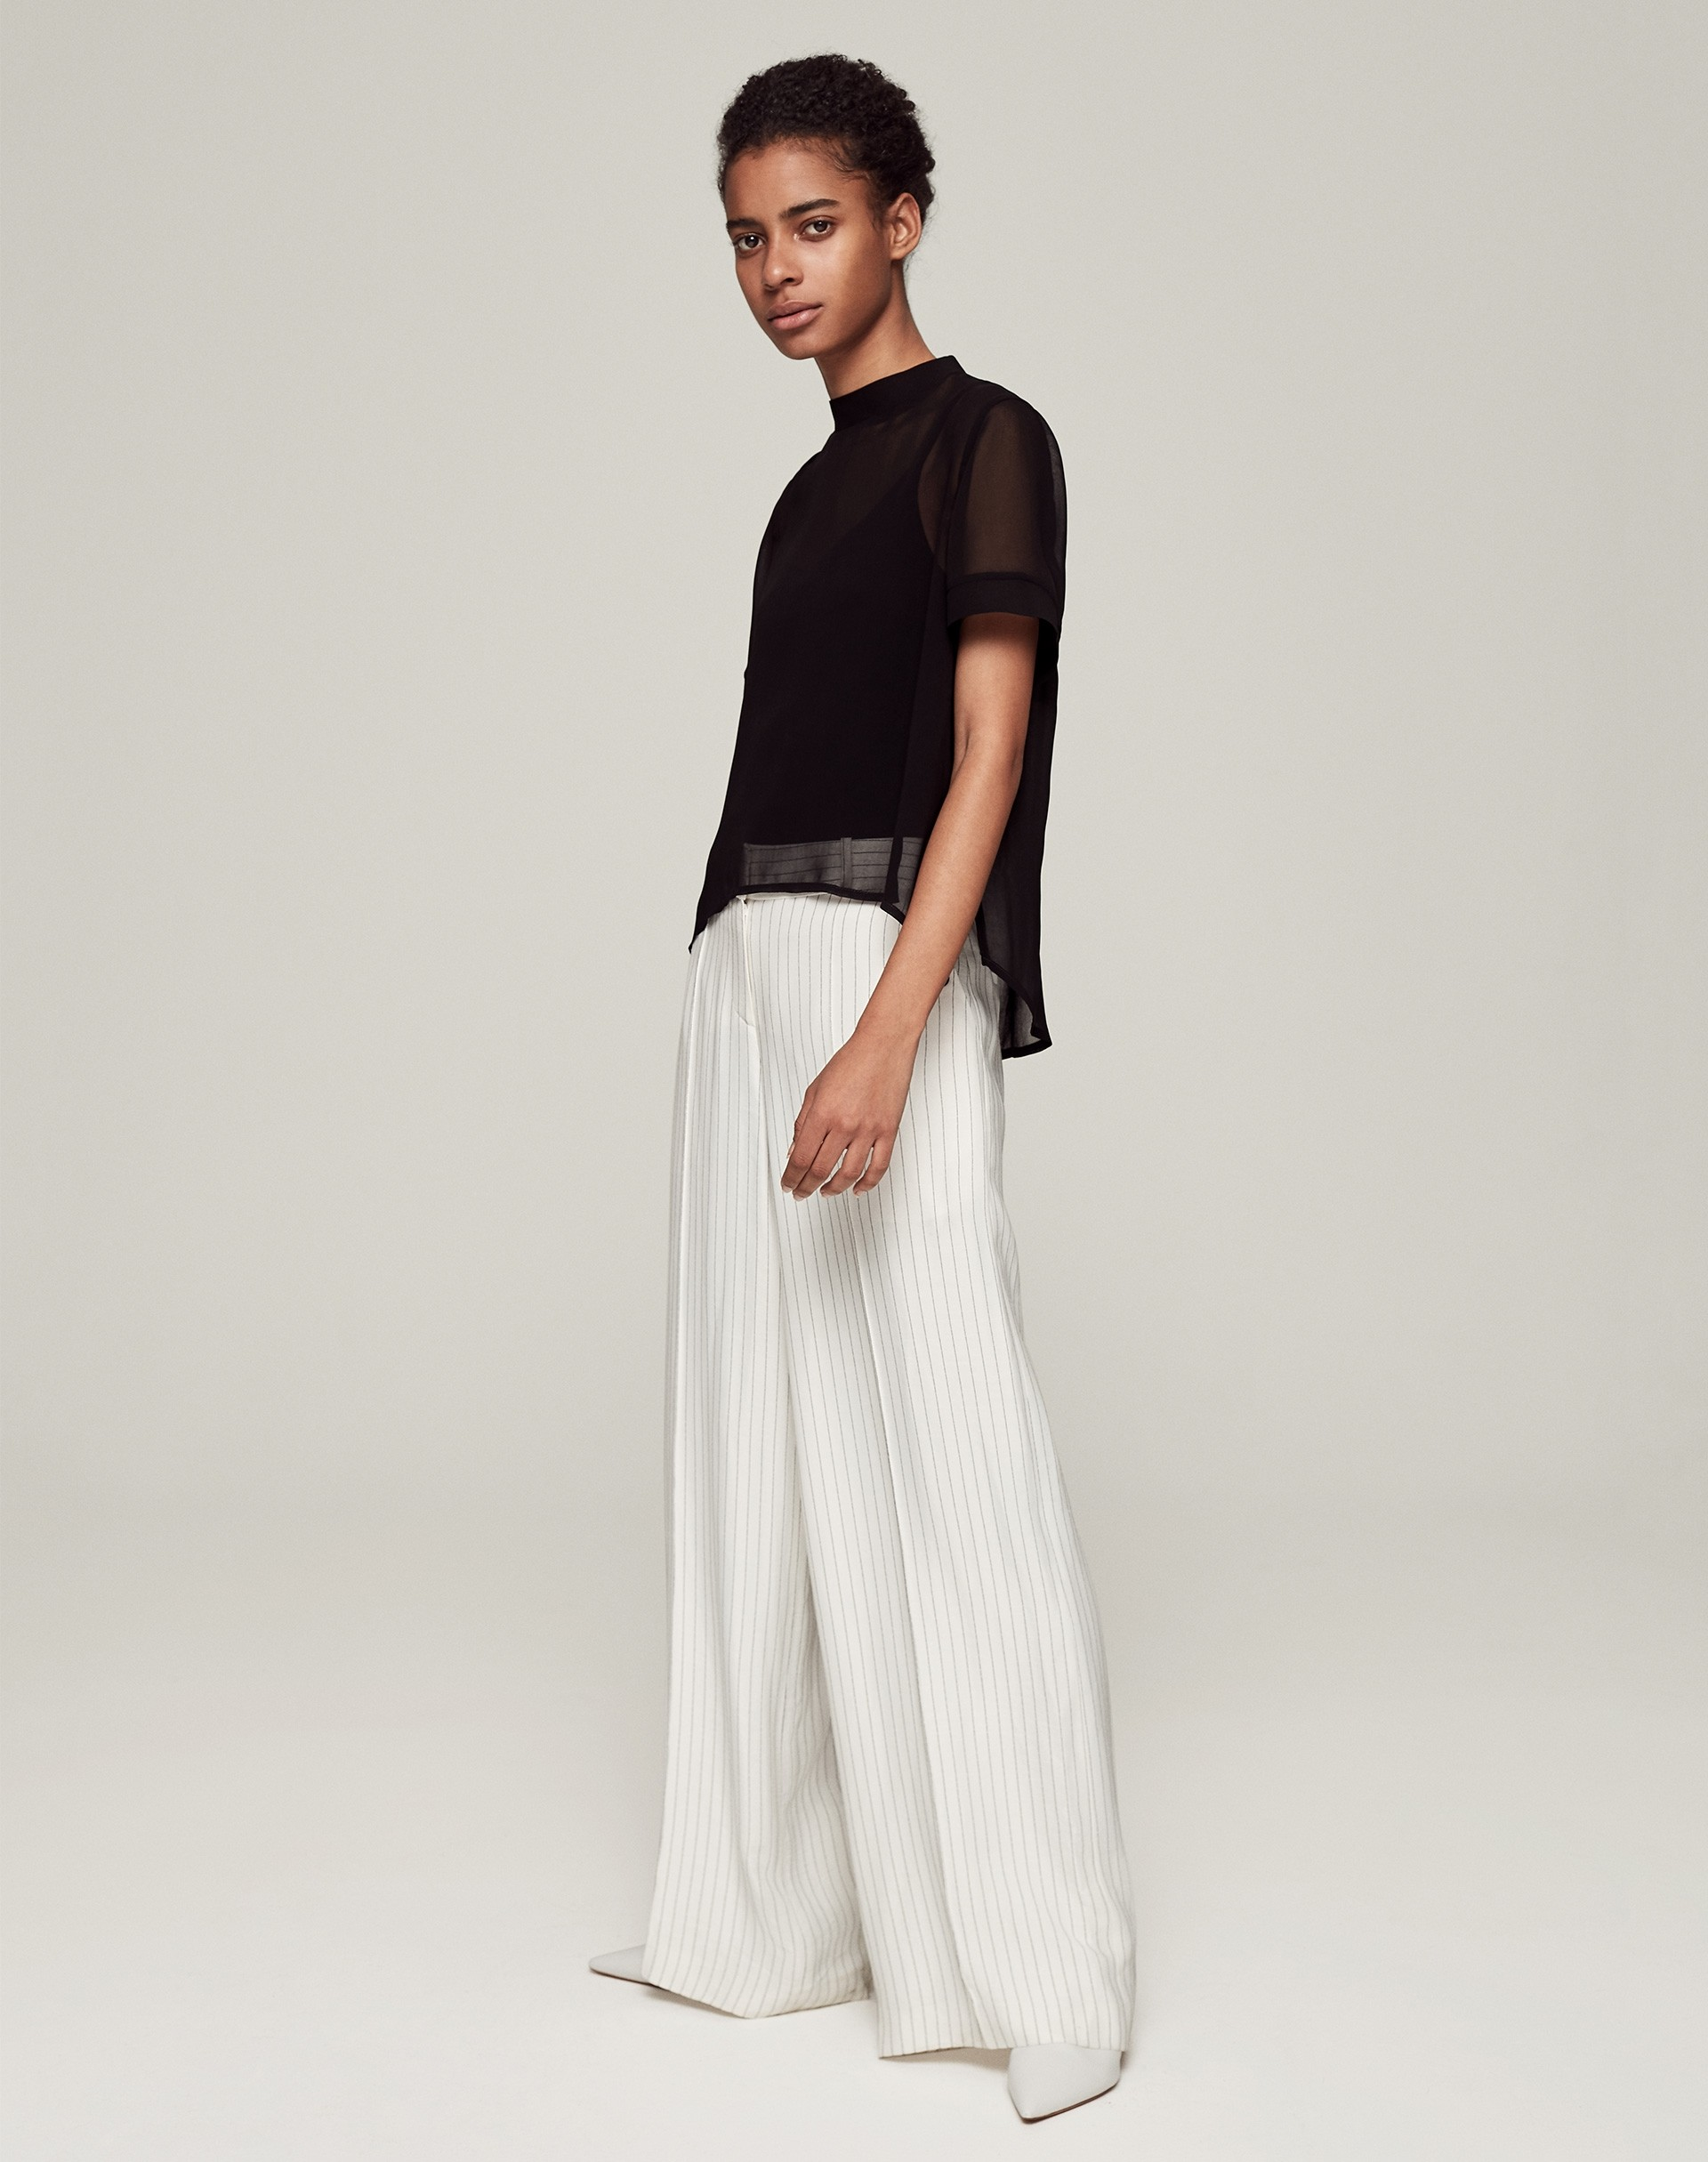 Meet MeEm: The fashion editor's go-to brand for trousers that flatter